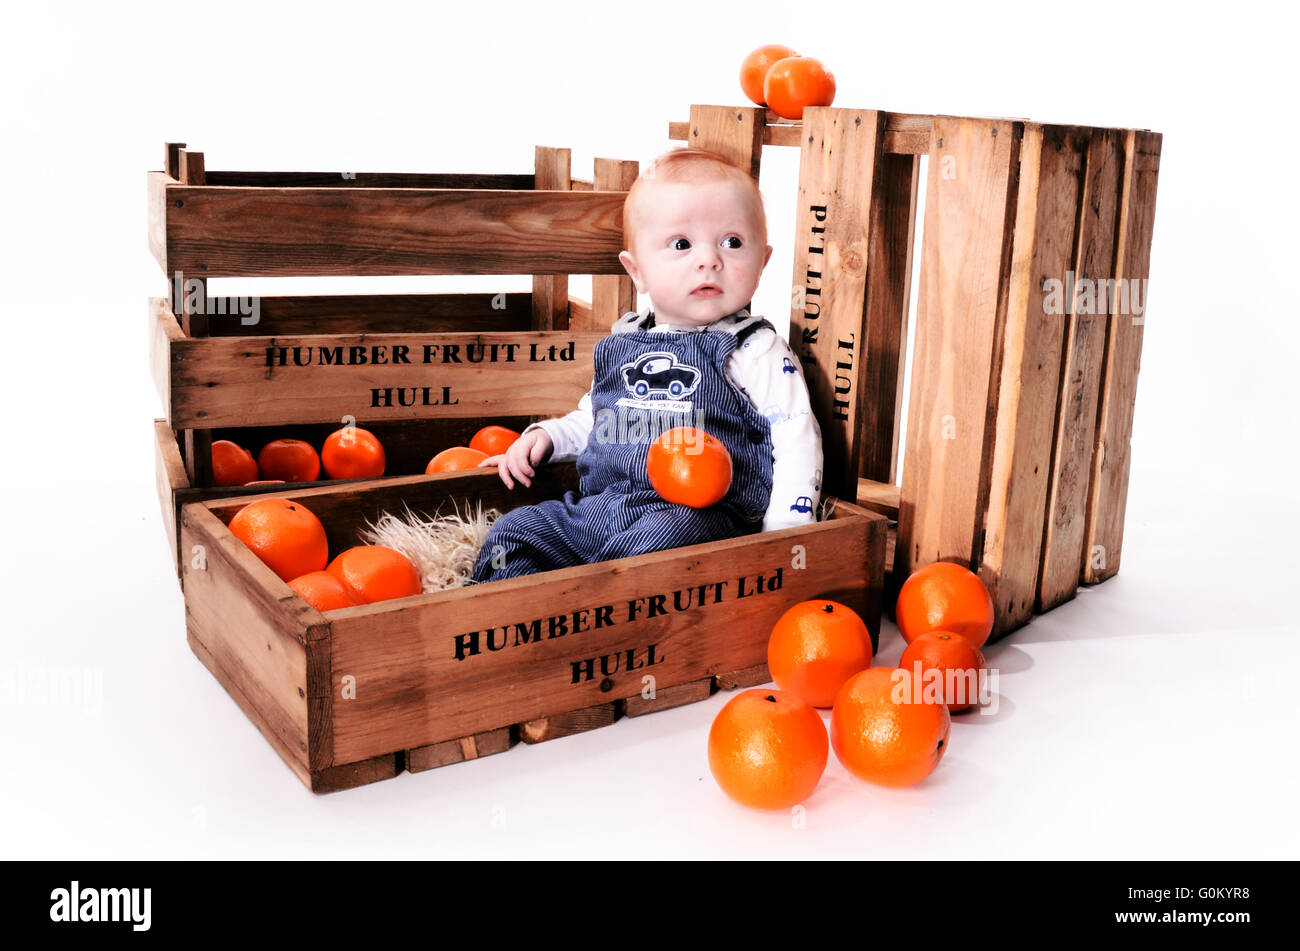 baby sitting in fruit box, humber street fruit market. Kingston upon Hull, City of culture 2017, Hull - Stock Image